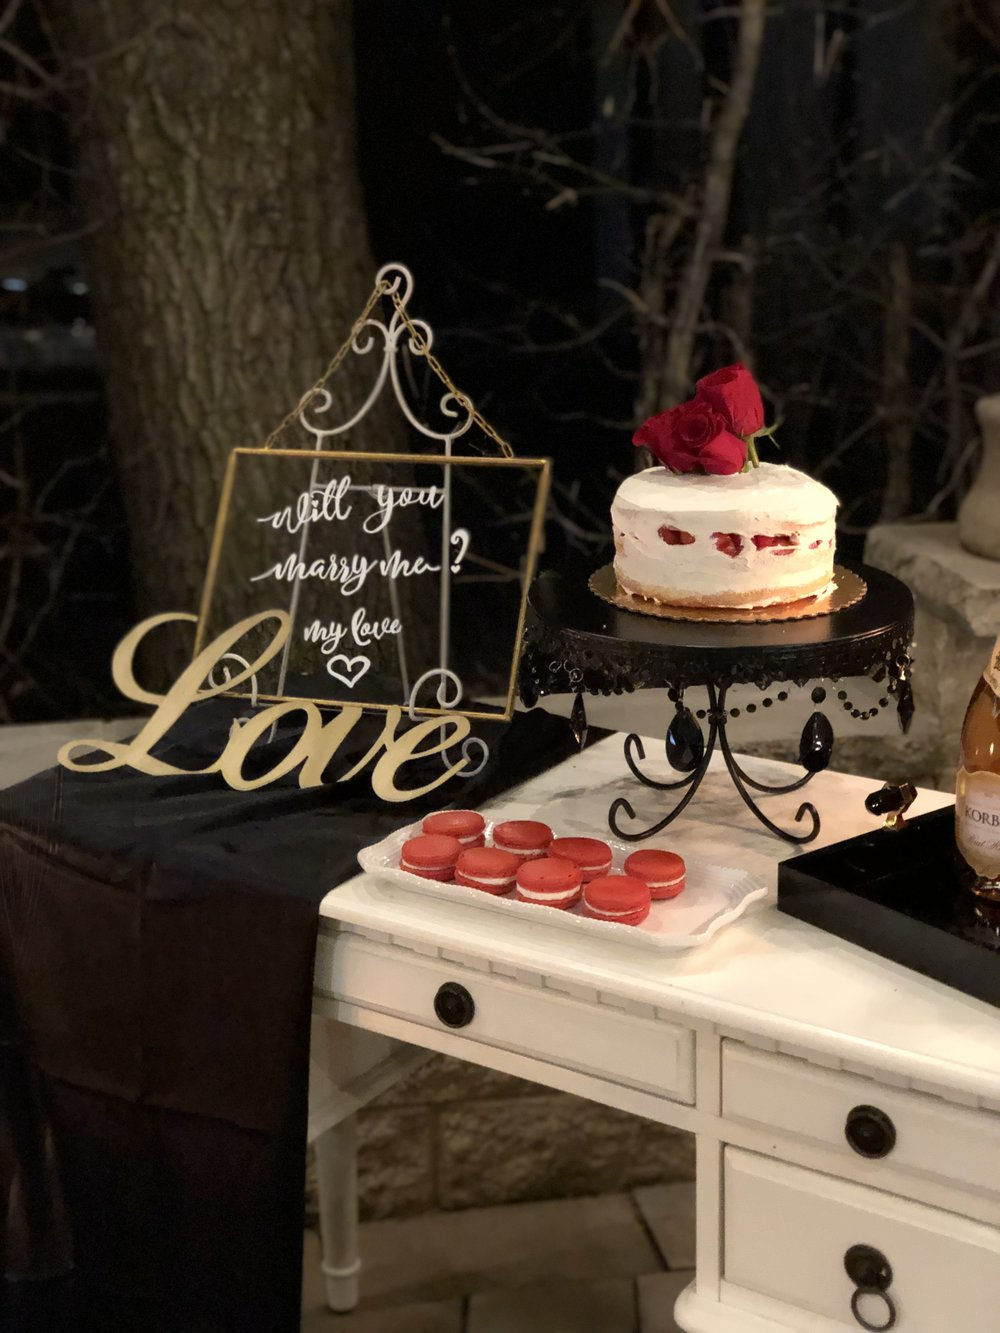 Romantic Chicago proposal planned by Heavenly Events. Find more engagement inspiration at CHItheeWED.com!